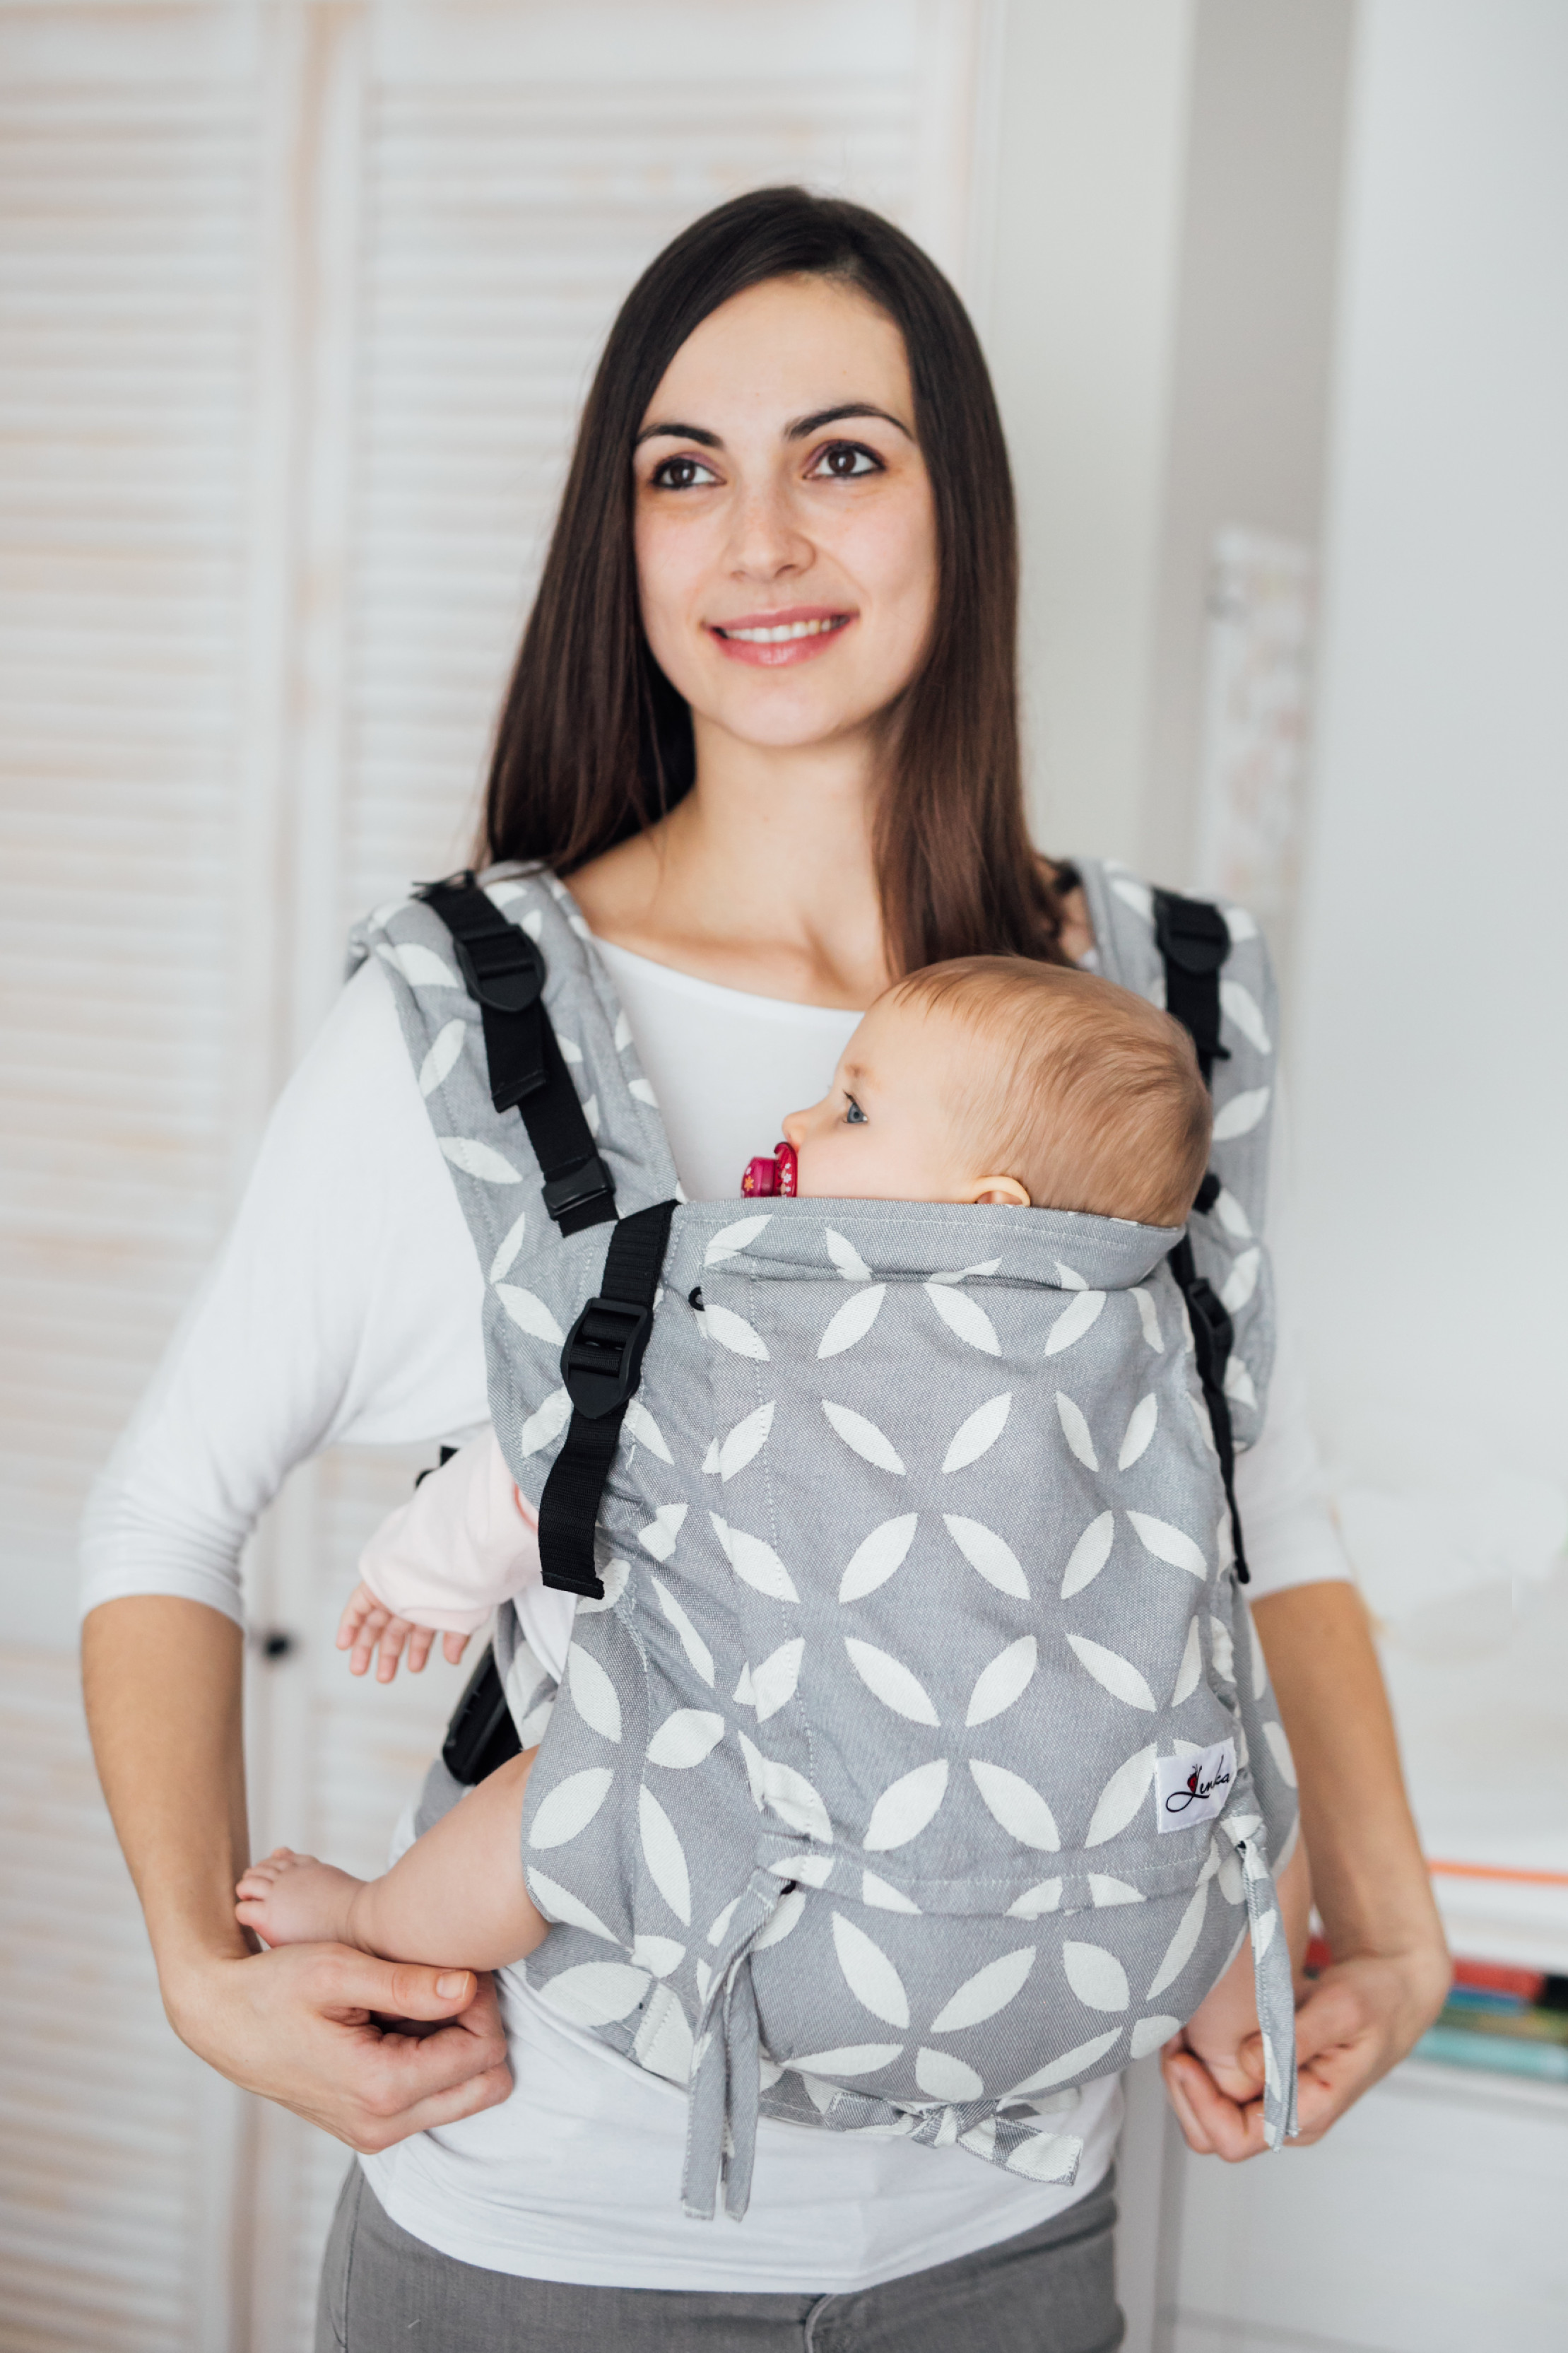 Baby carrier - Be Lenka 4ever Classic - Grey classic without the possibility of crossing